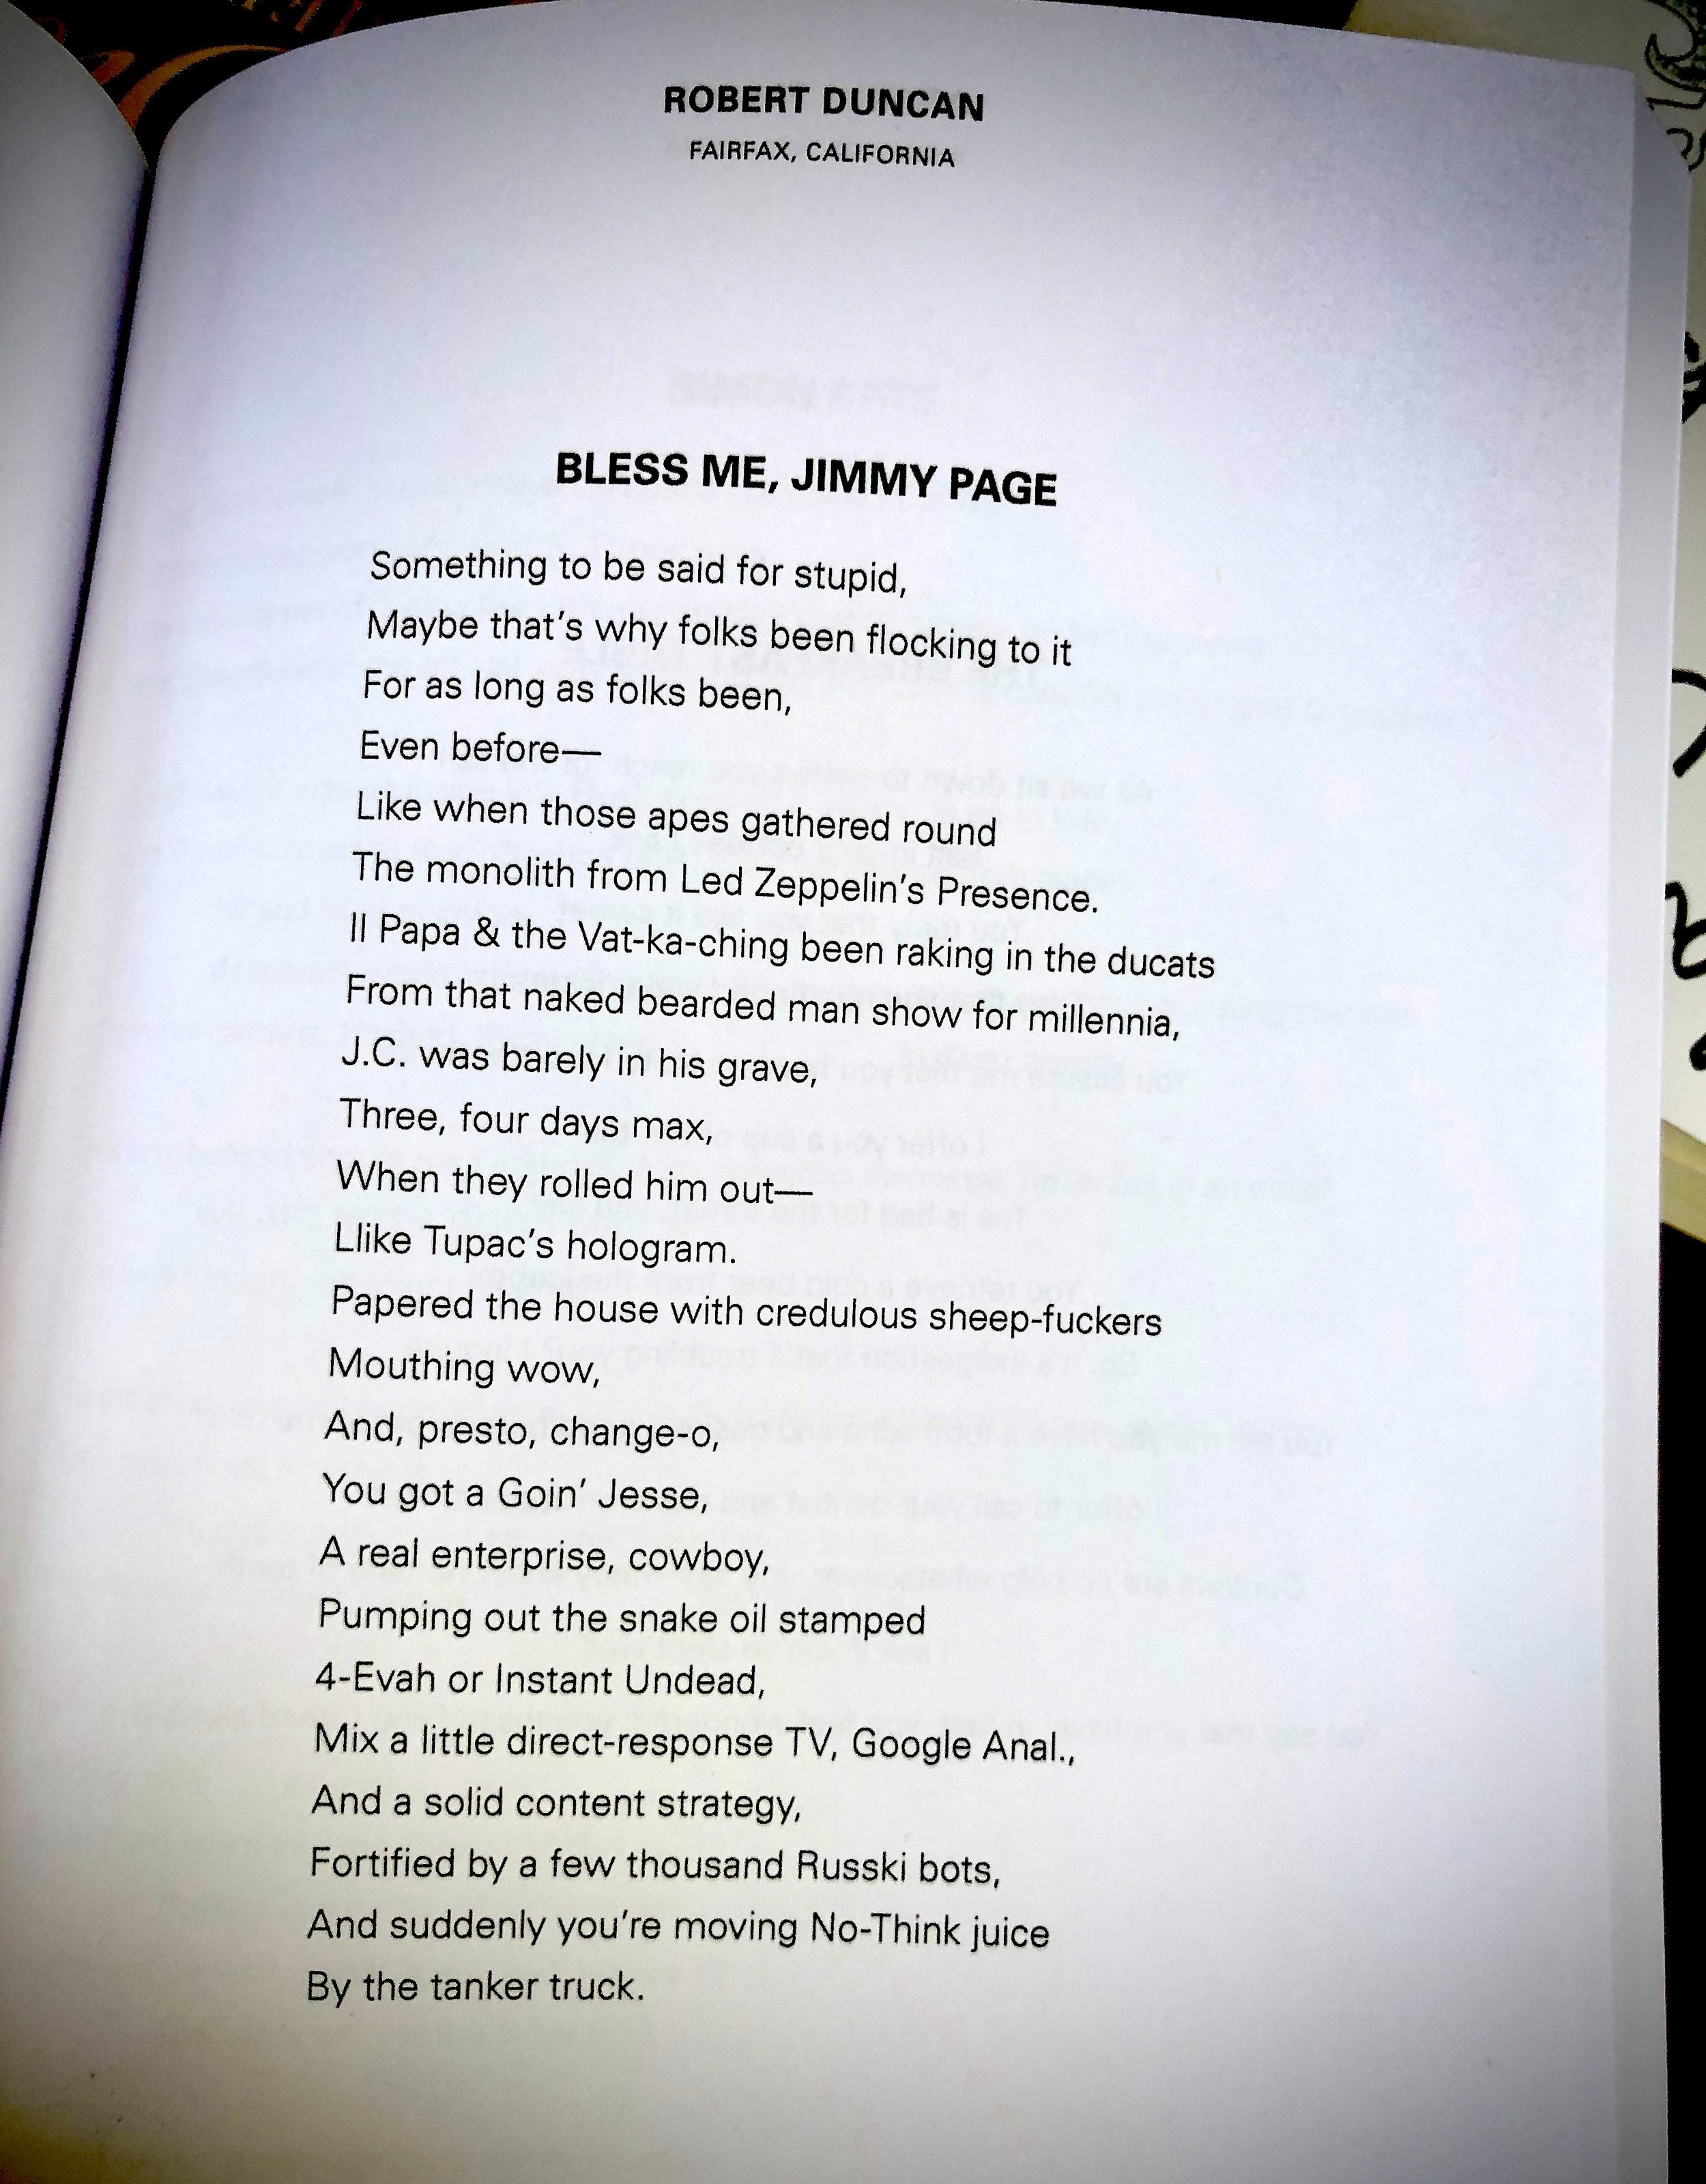 2-Bless Me Jimmy Page page.jpg